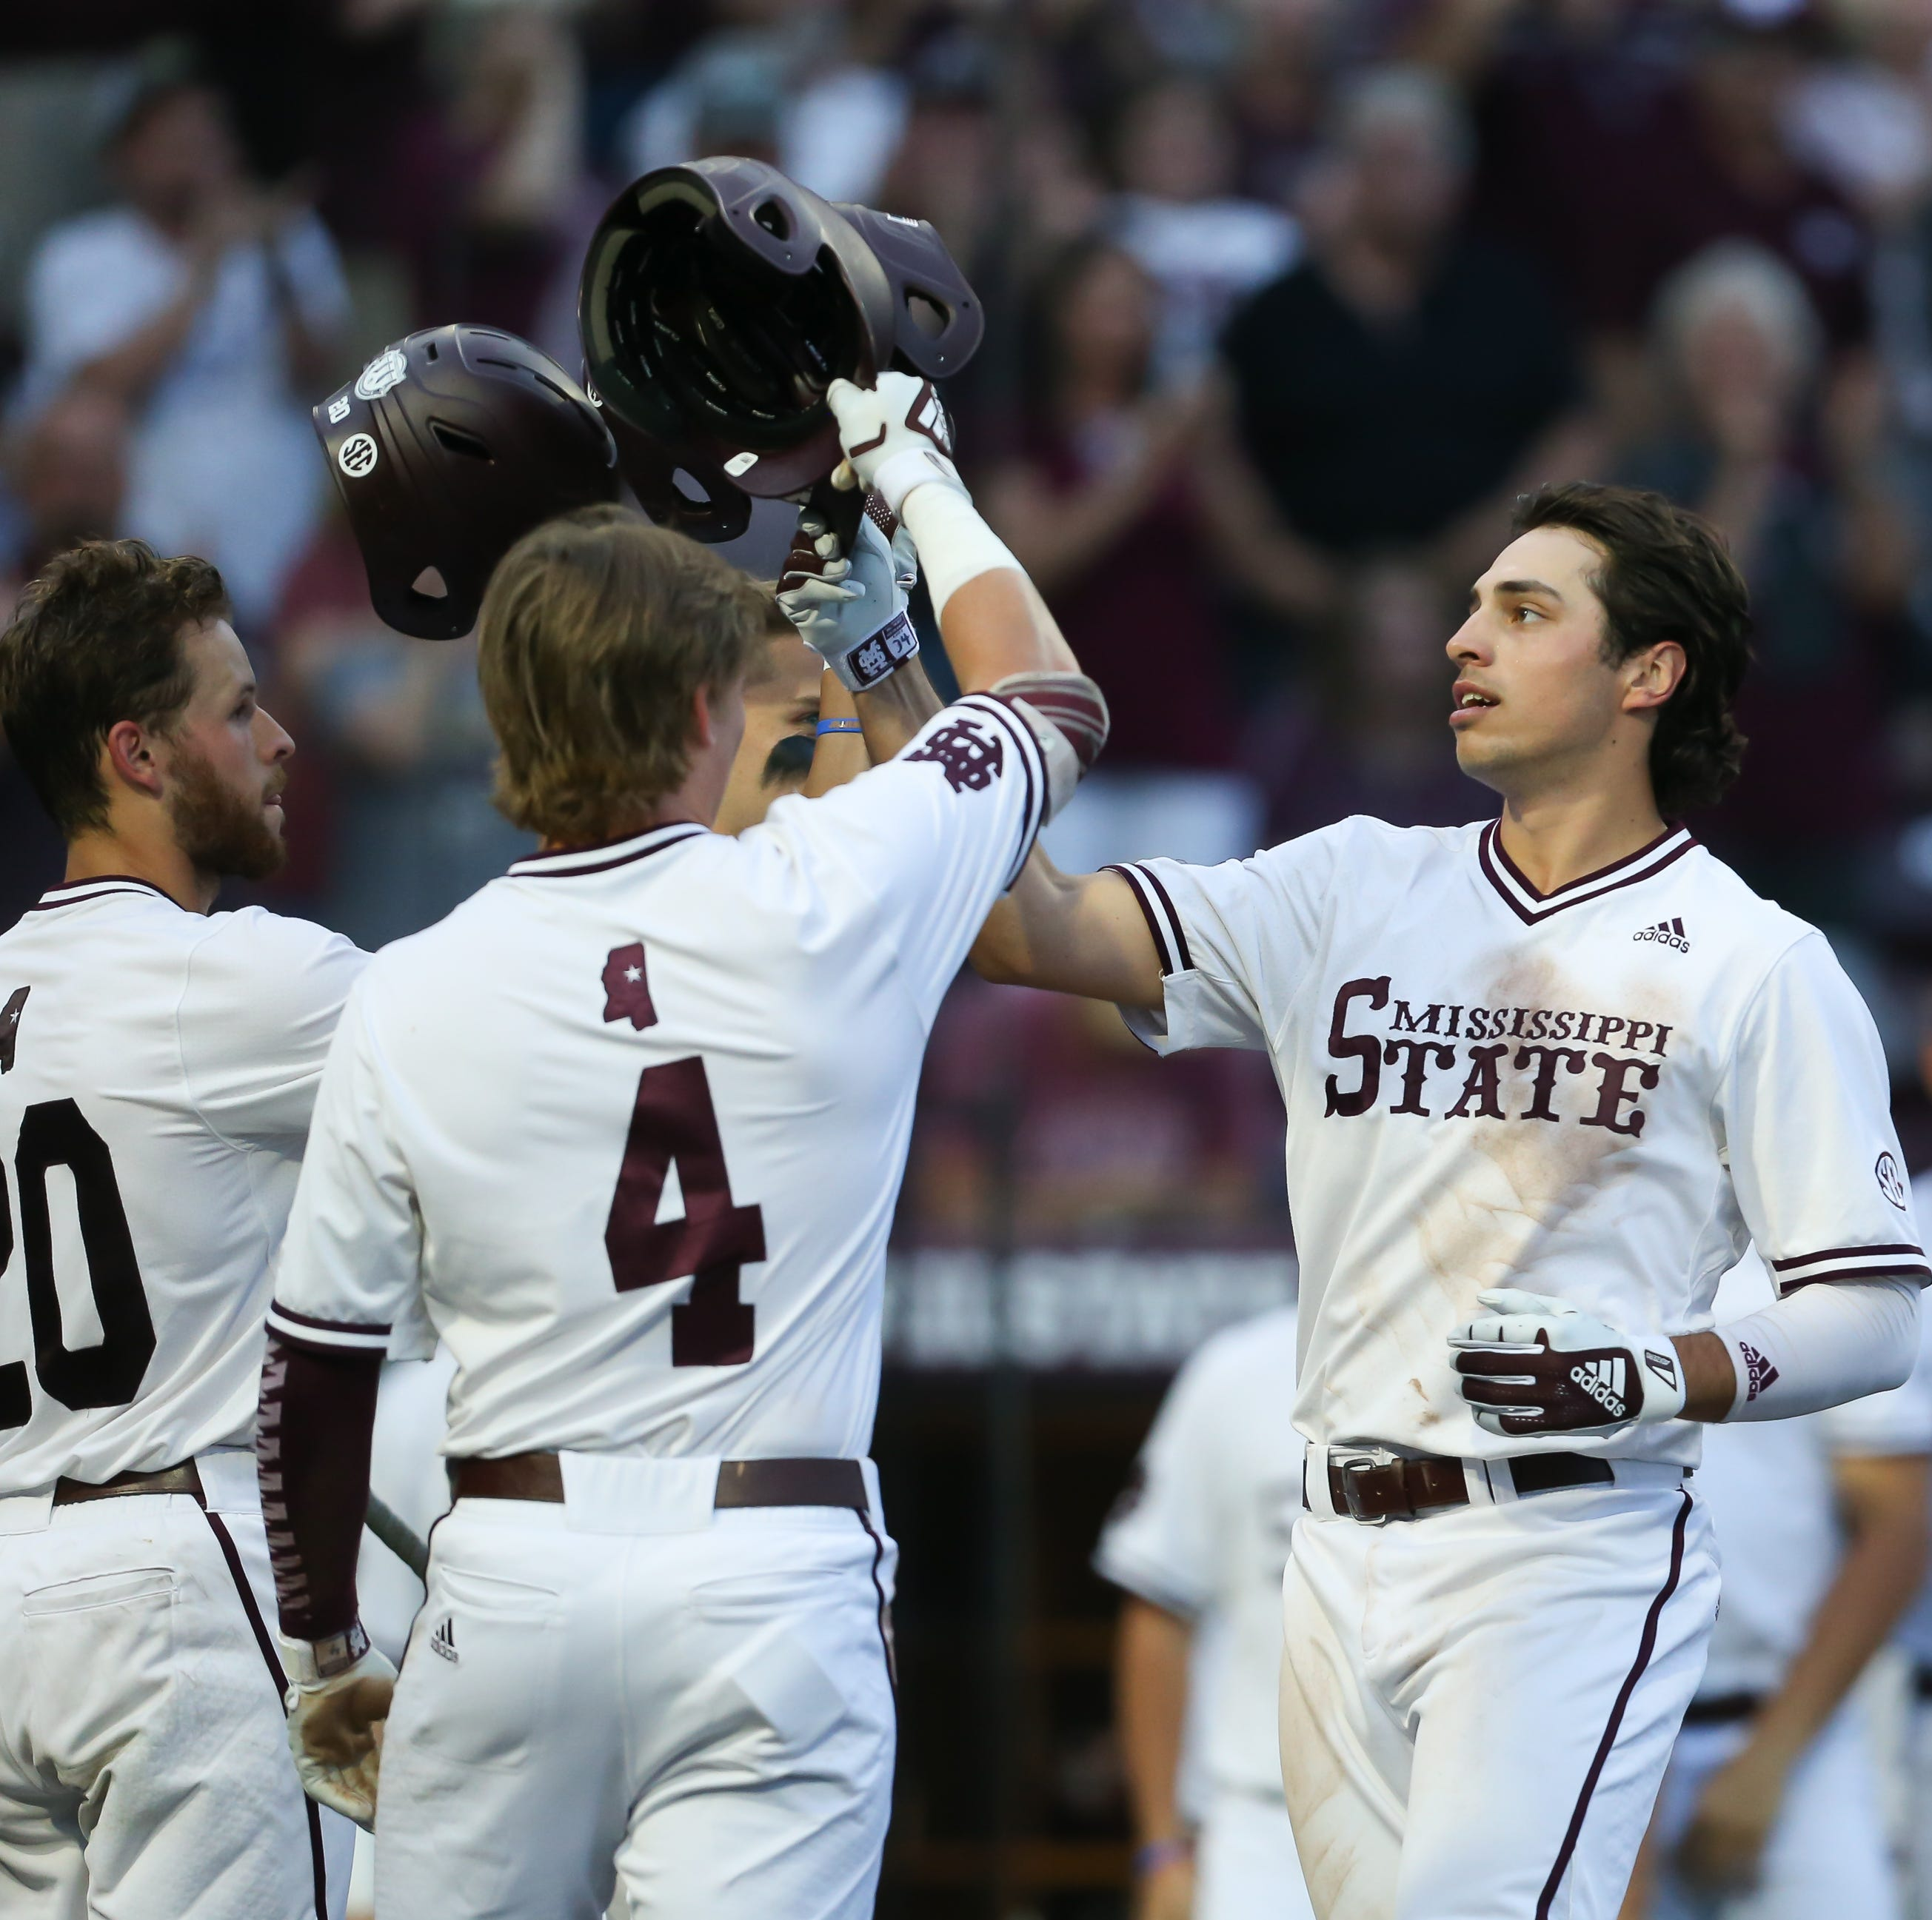 Mississippi State Bulldogs battle back to beat Memphis at Dudy Noble Field